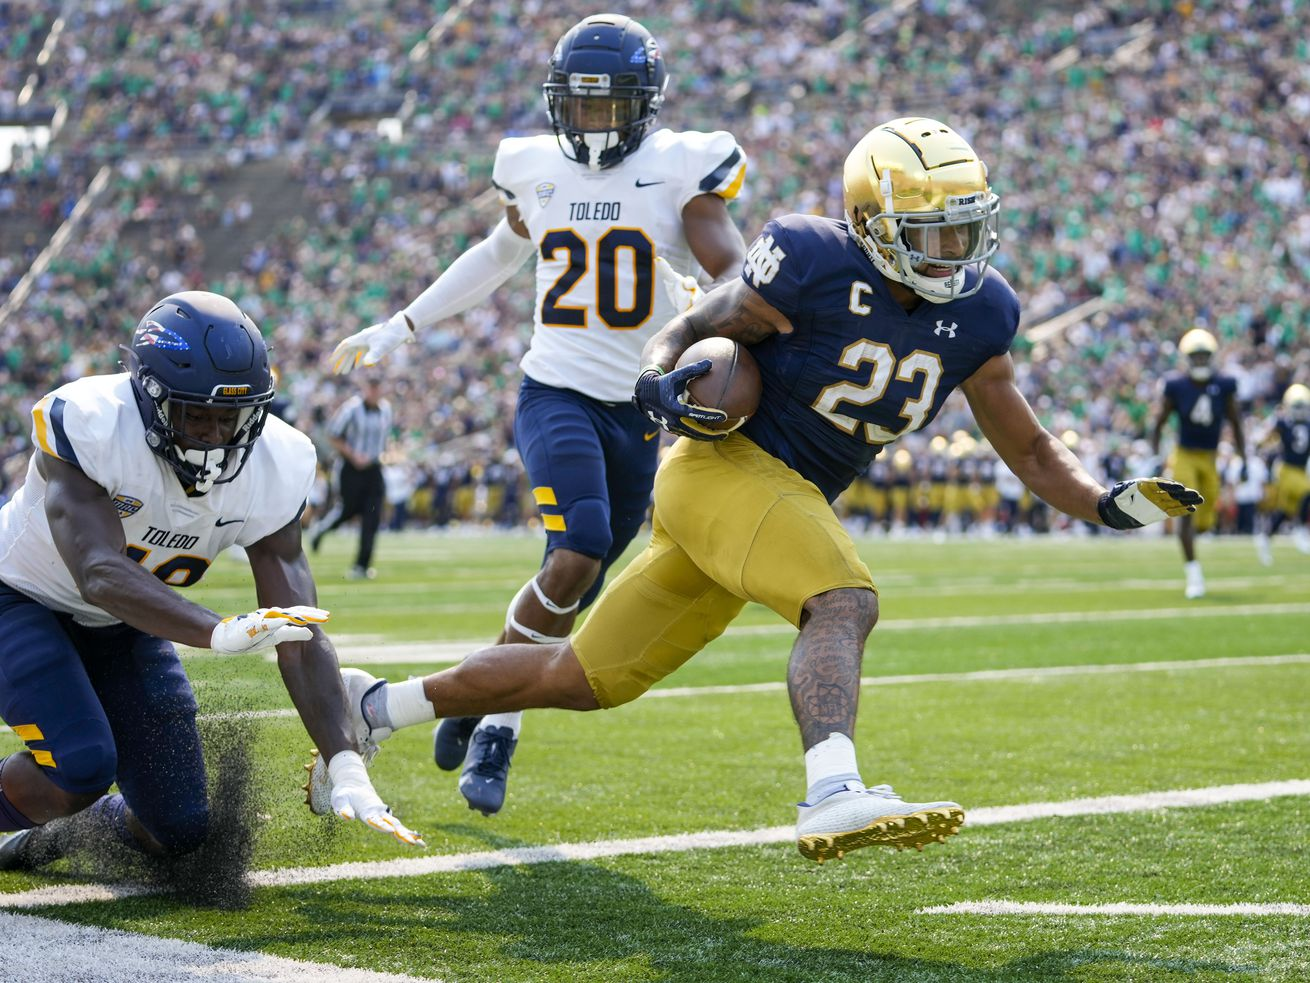 Notre Dame running back Kyren Williams (23) scores a touchdown in front of Toledo's Saeed Holt (20) and Nate Givhan (48) last Saturday.